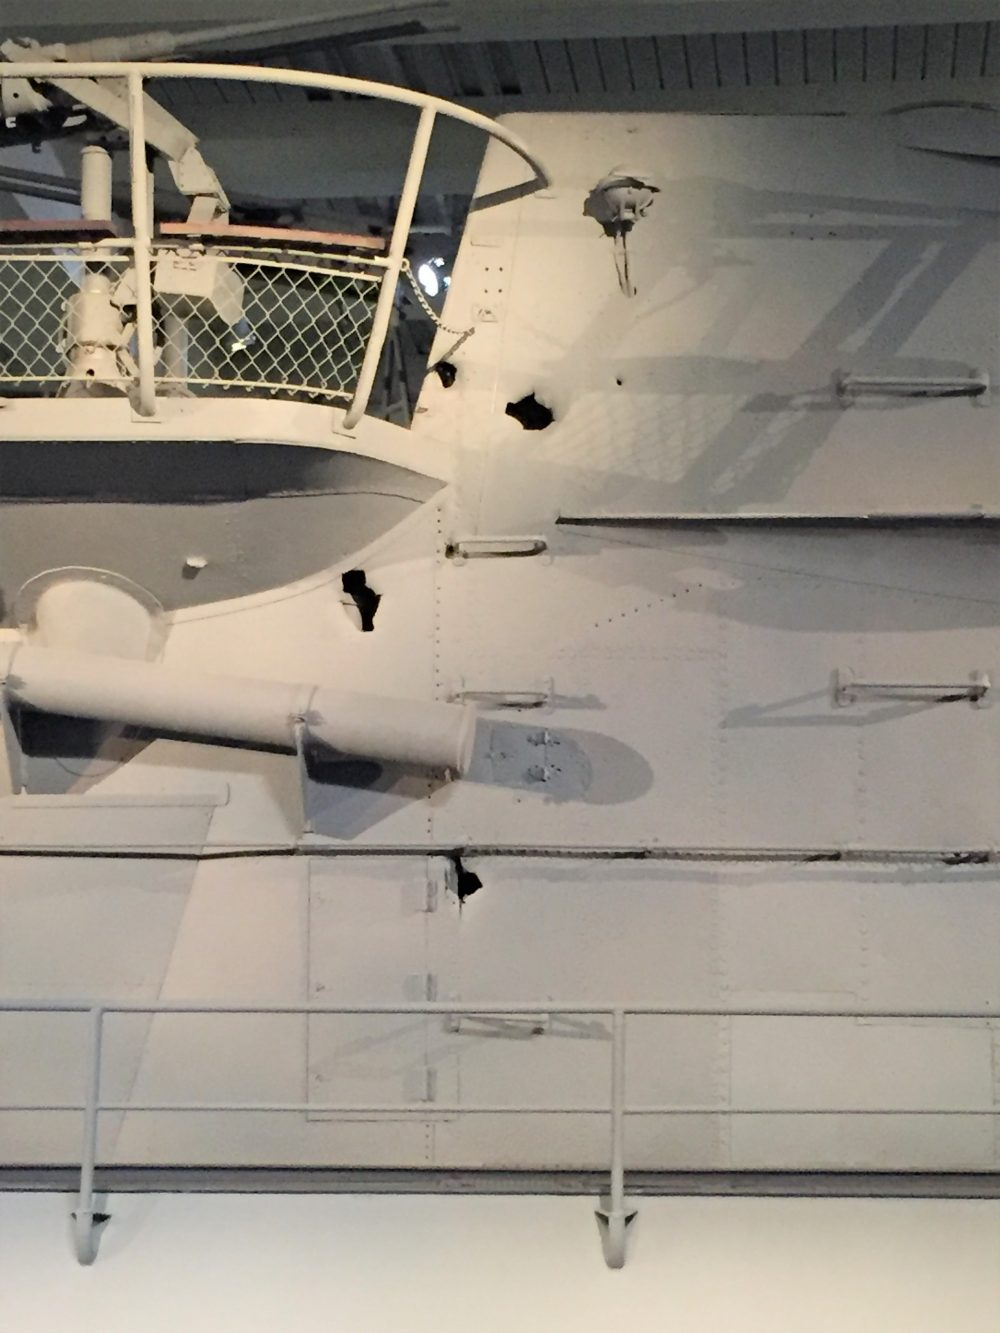 Damage to the conning tower of U-505, Chicago Museum of Science and Industry (Photo: Sarah Sundin, September 2016)